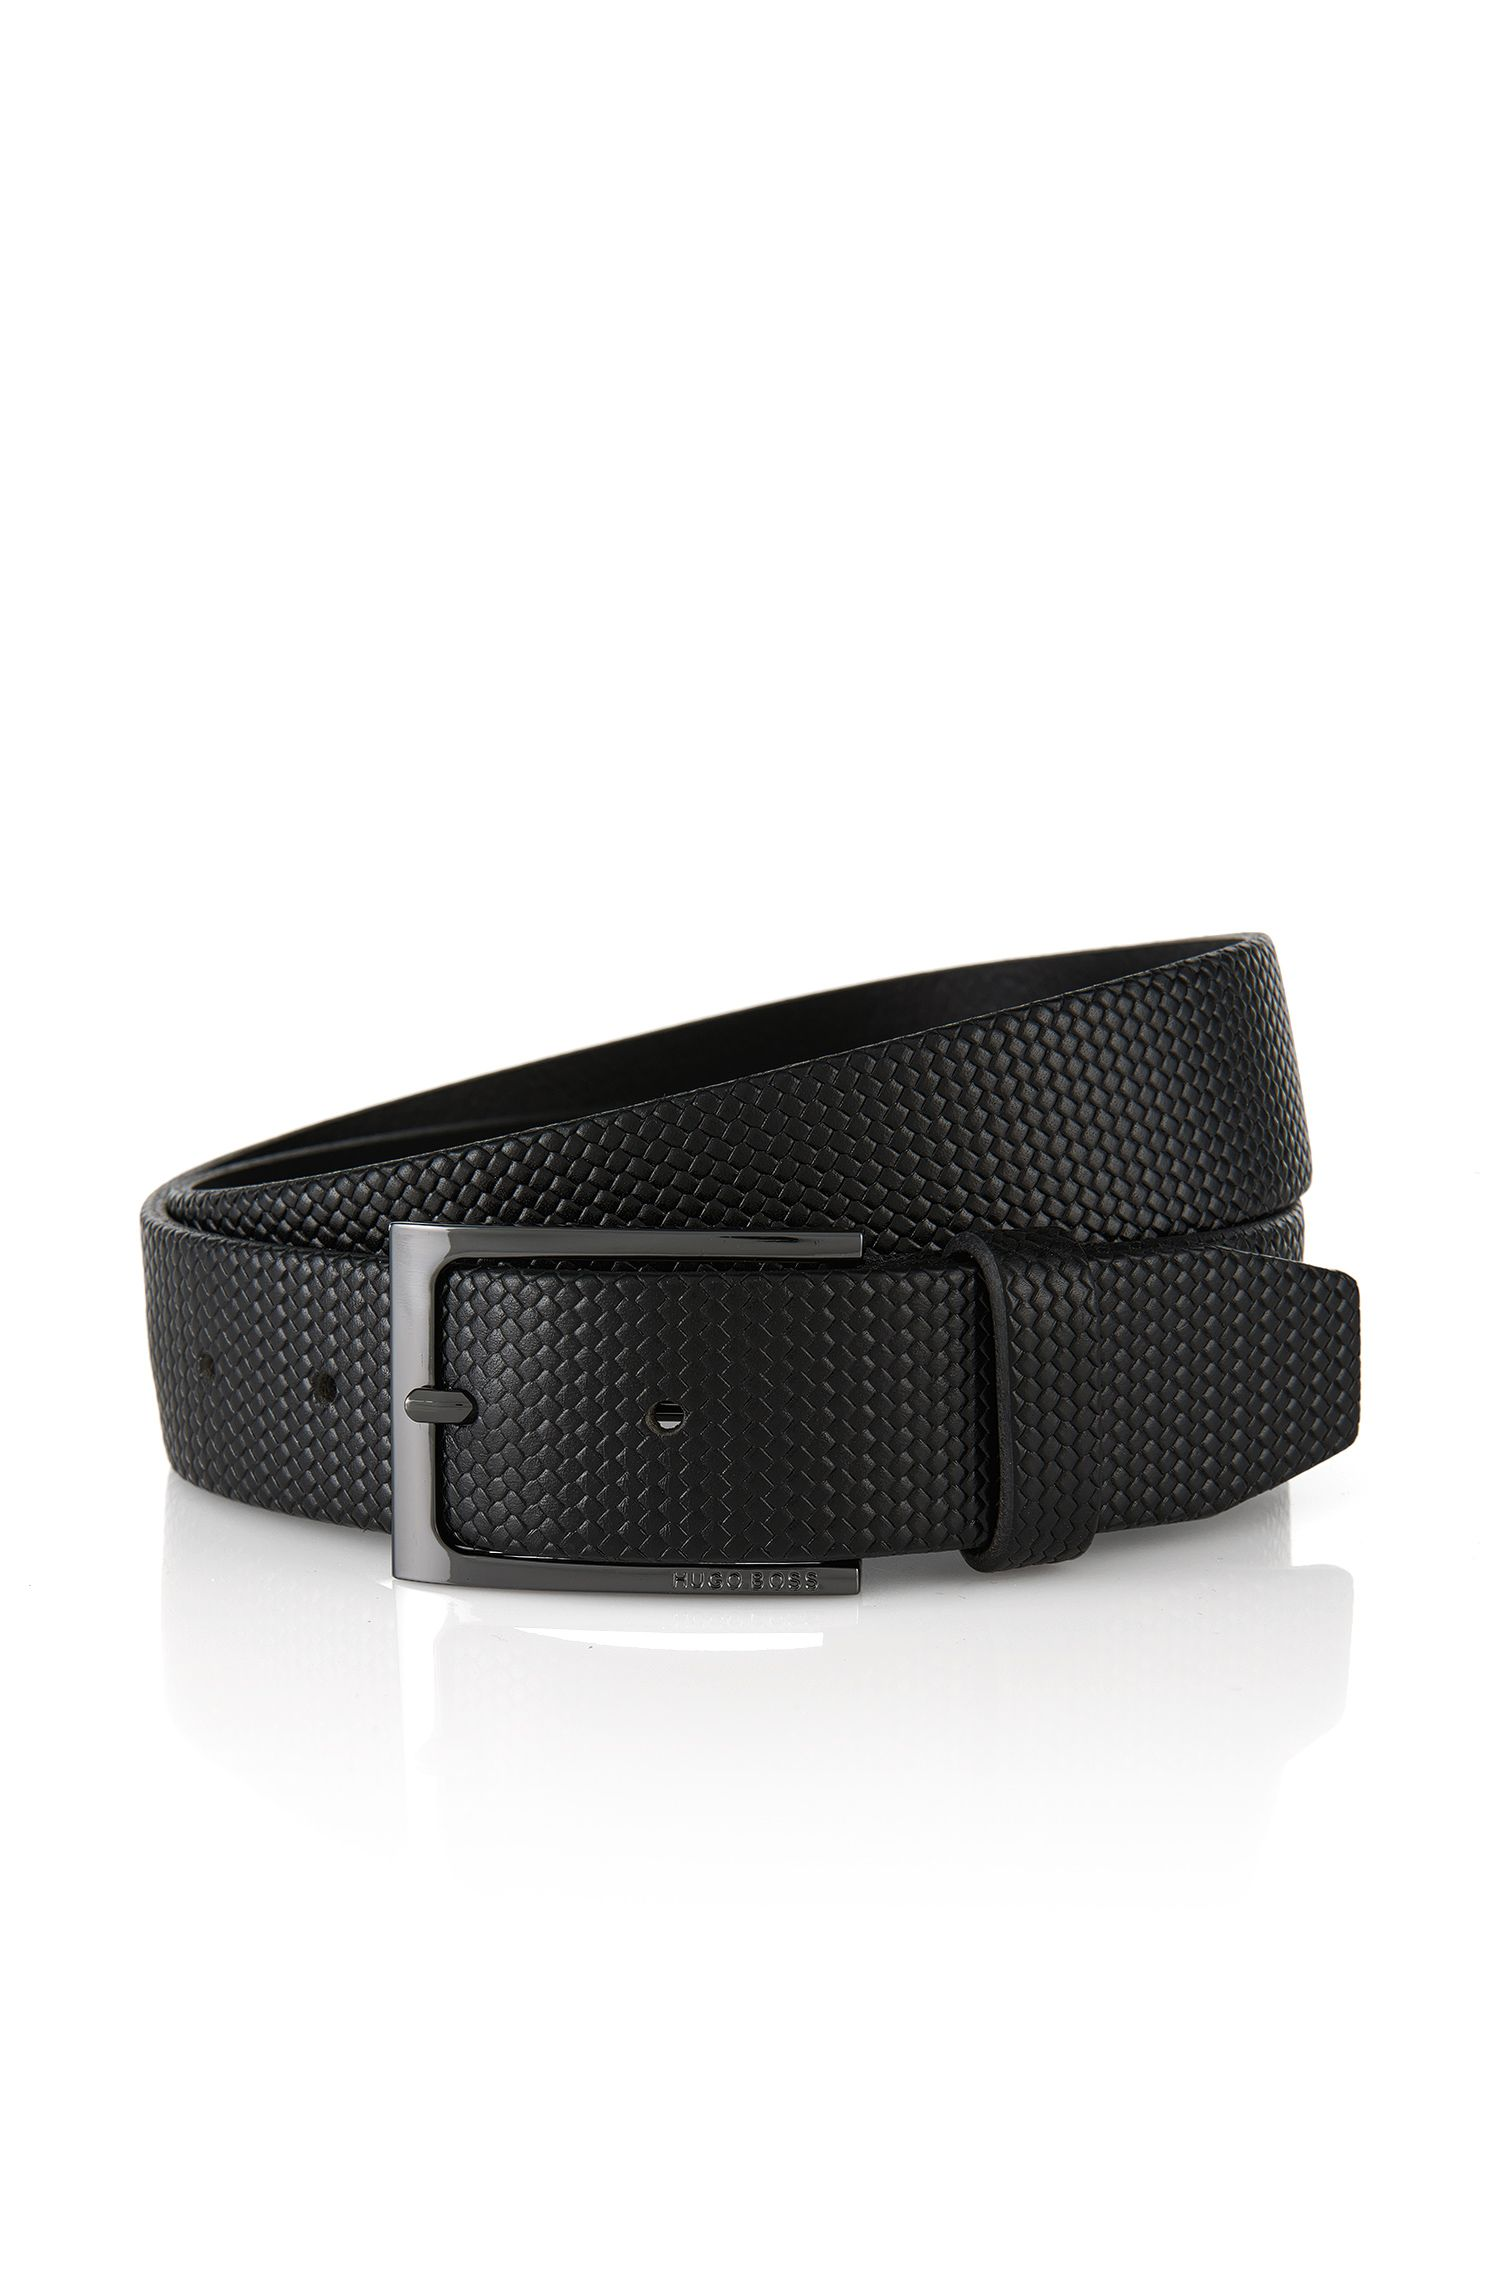 'Carmai' | Italian Leather Embossed Belt